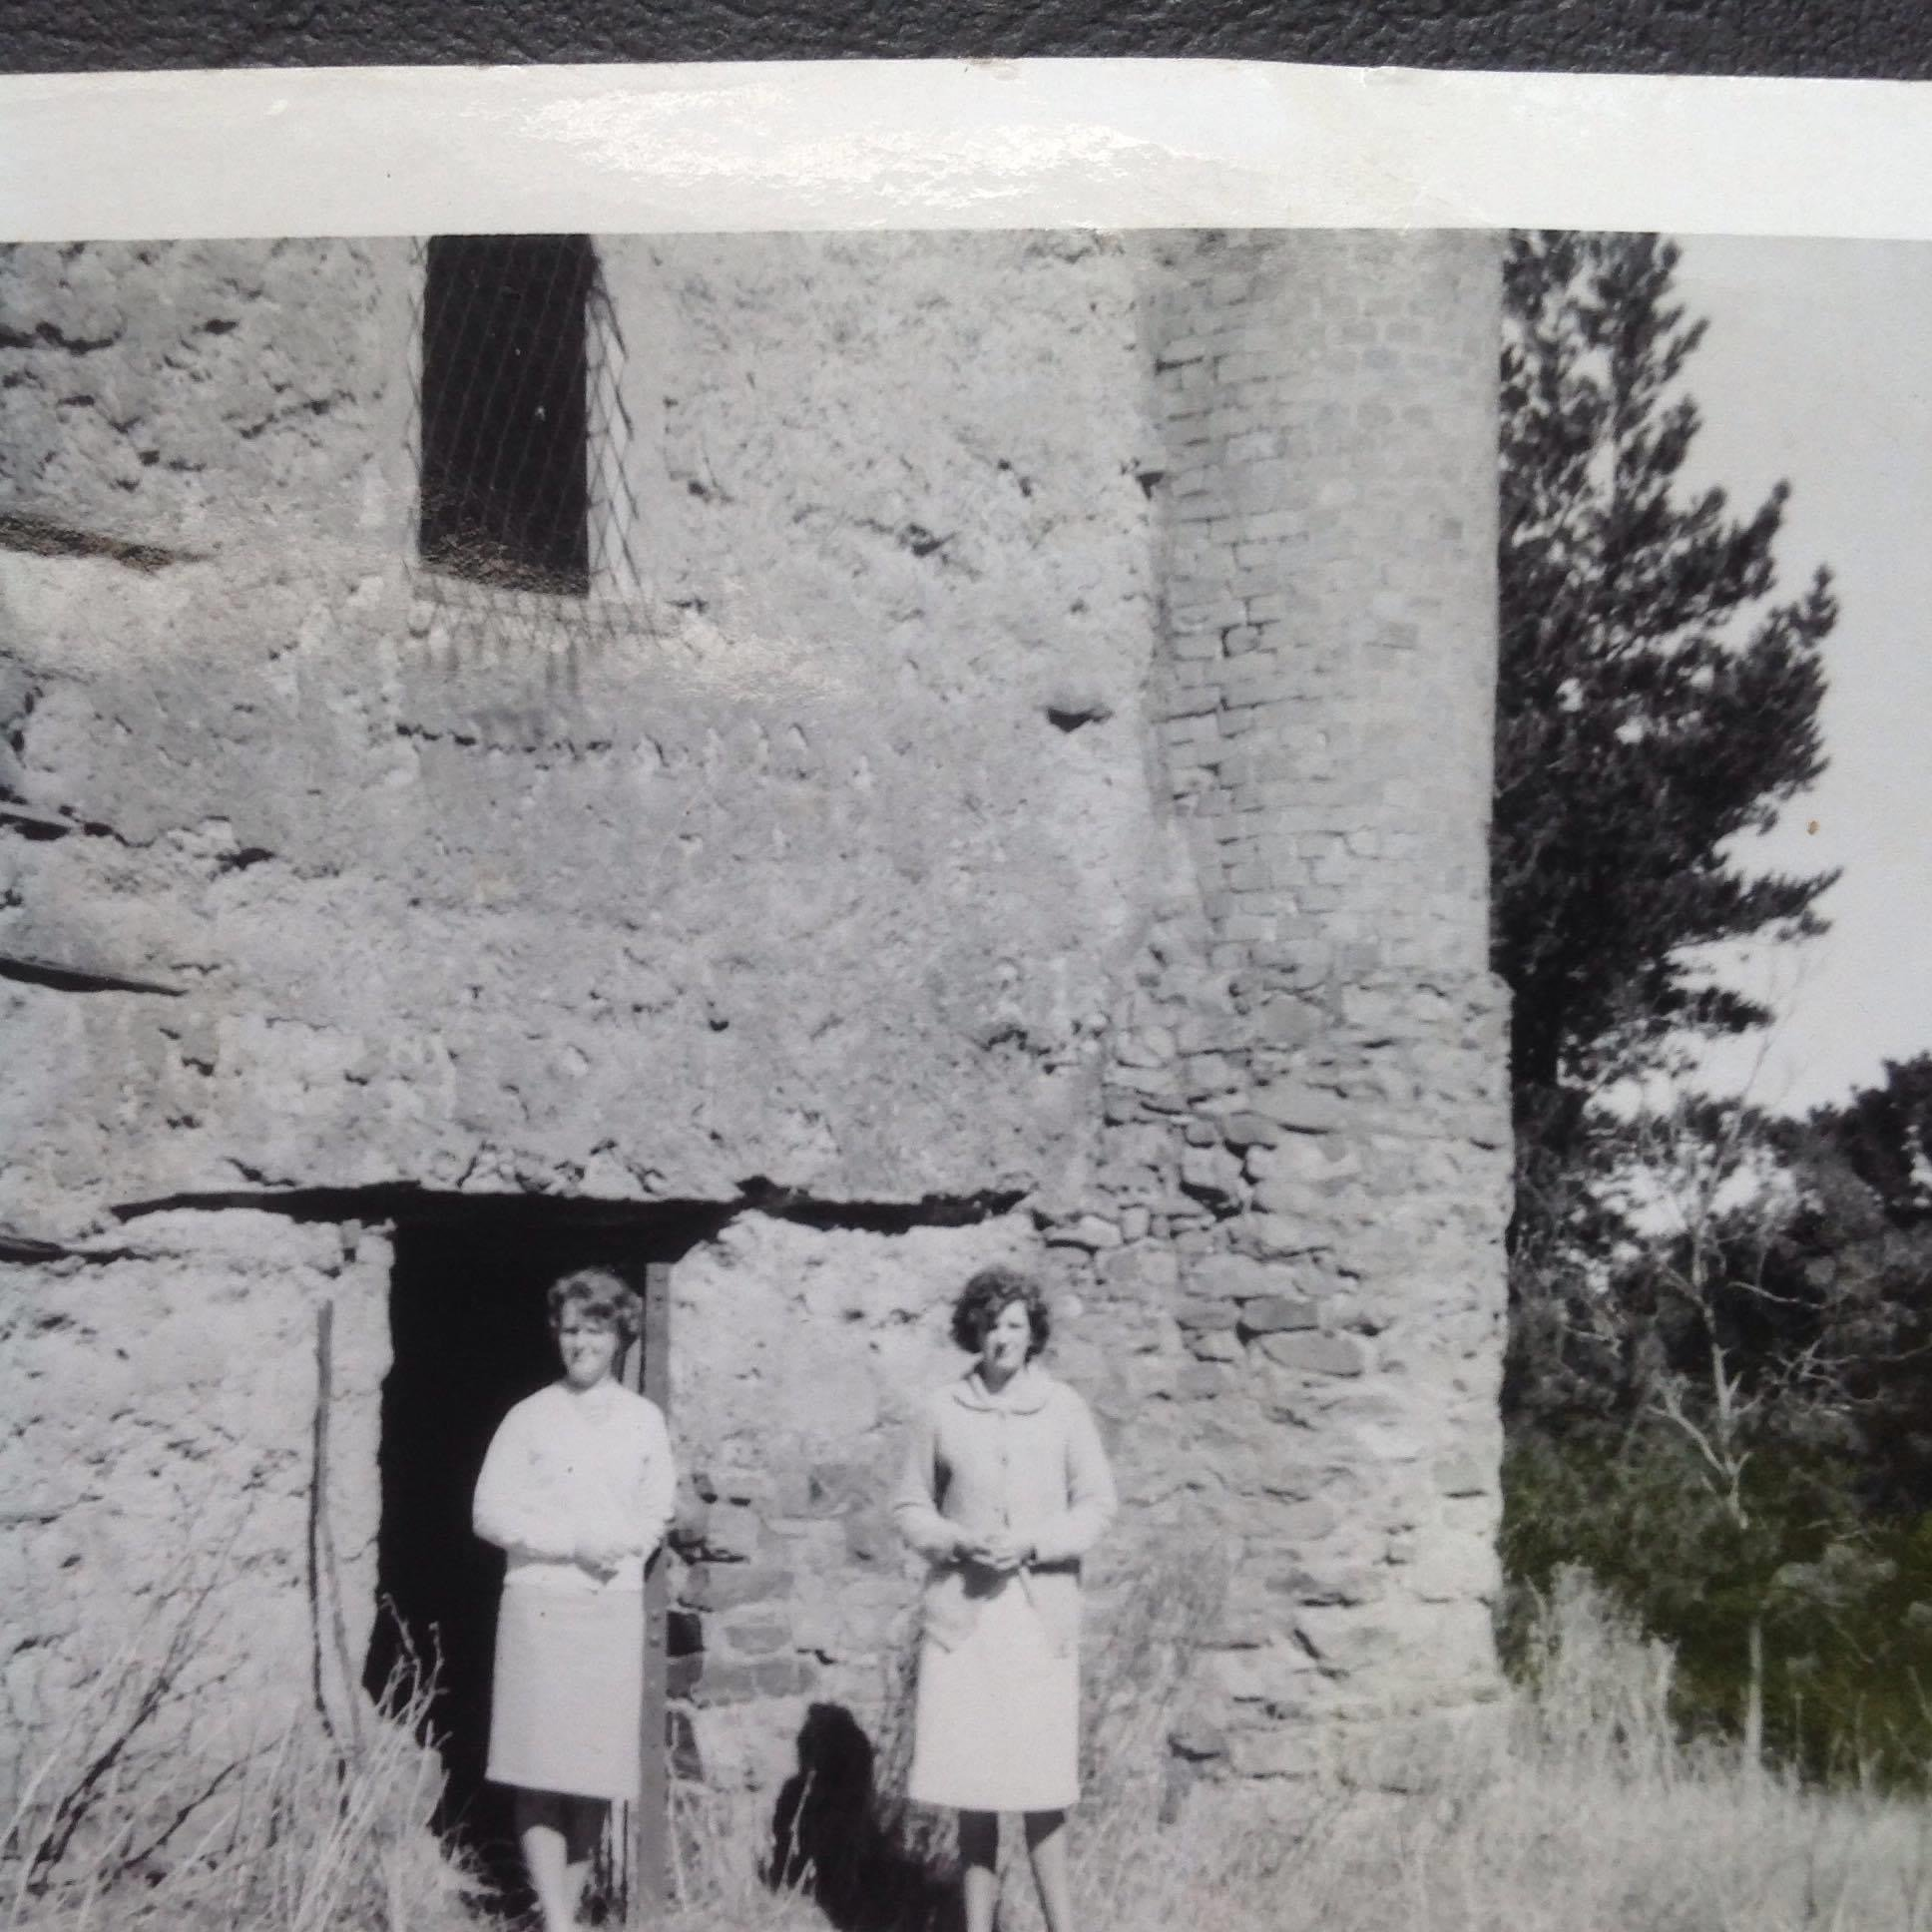 The Noy family at Bear's Castle, 1963